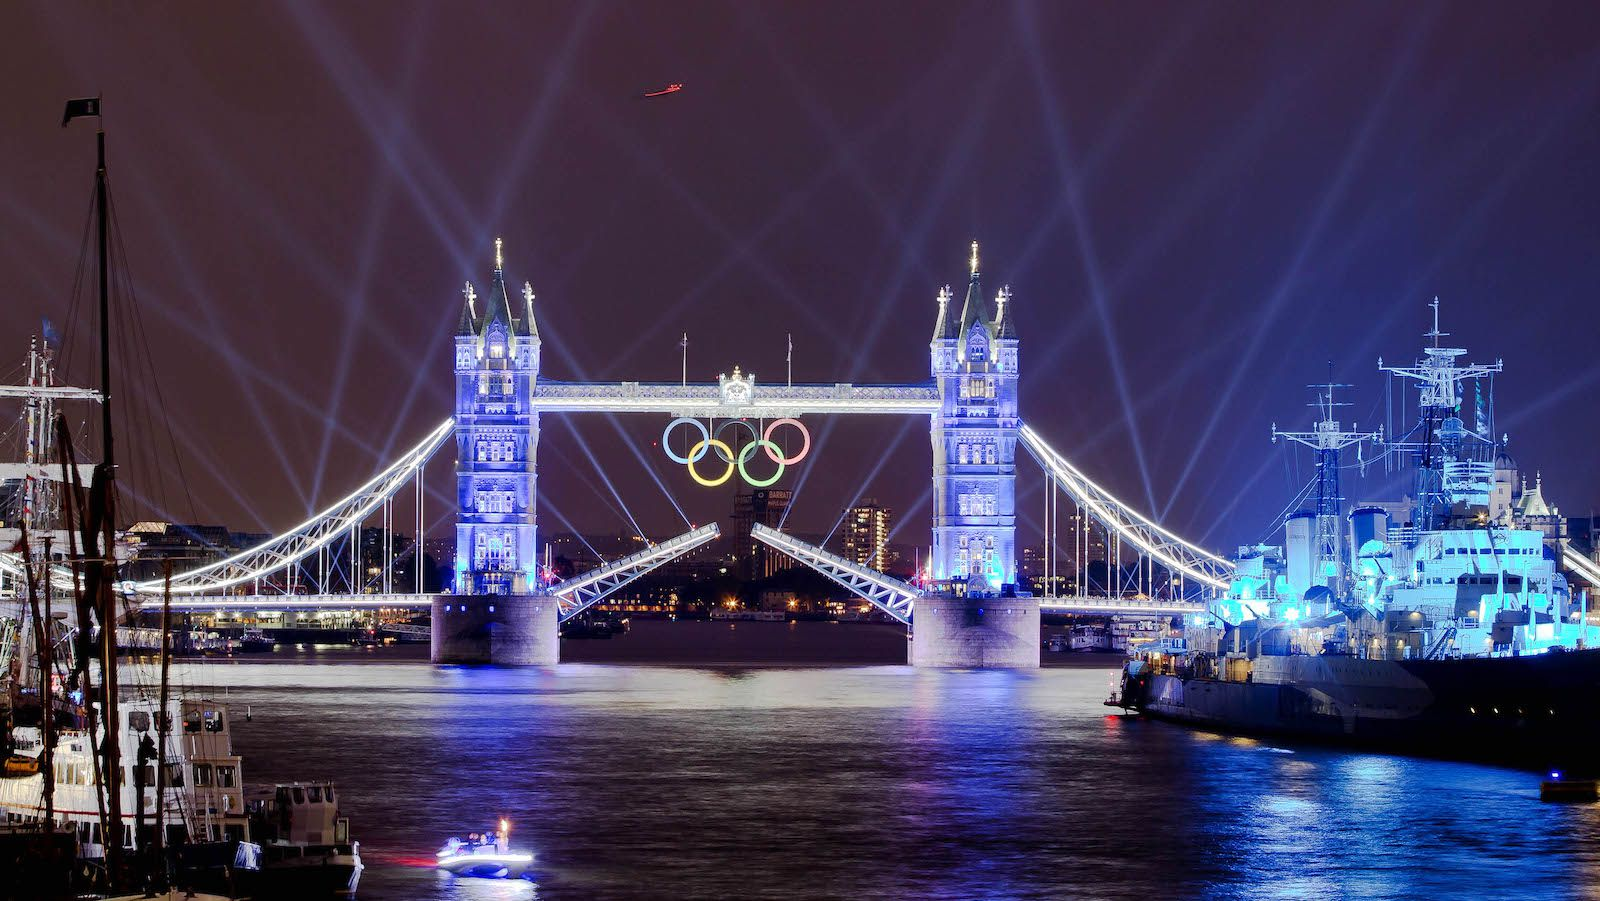 The speedboat, bottom left, carrying the Olympic Flame, heads to Tower Bridge during the Opening Ceremony at the 2012 Summer Olympics, Friday, July 27, 2012, in London.